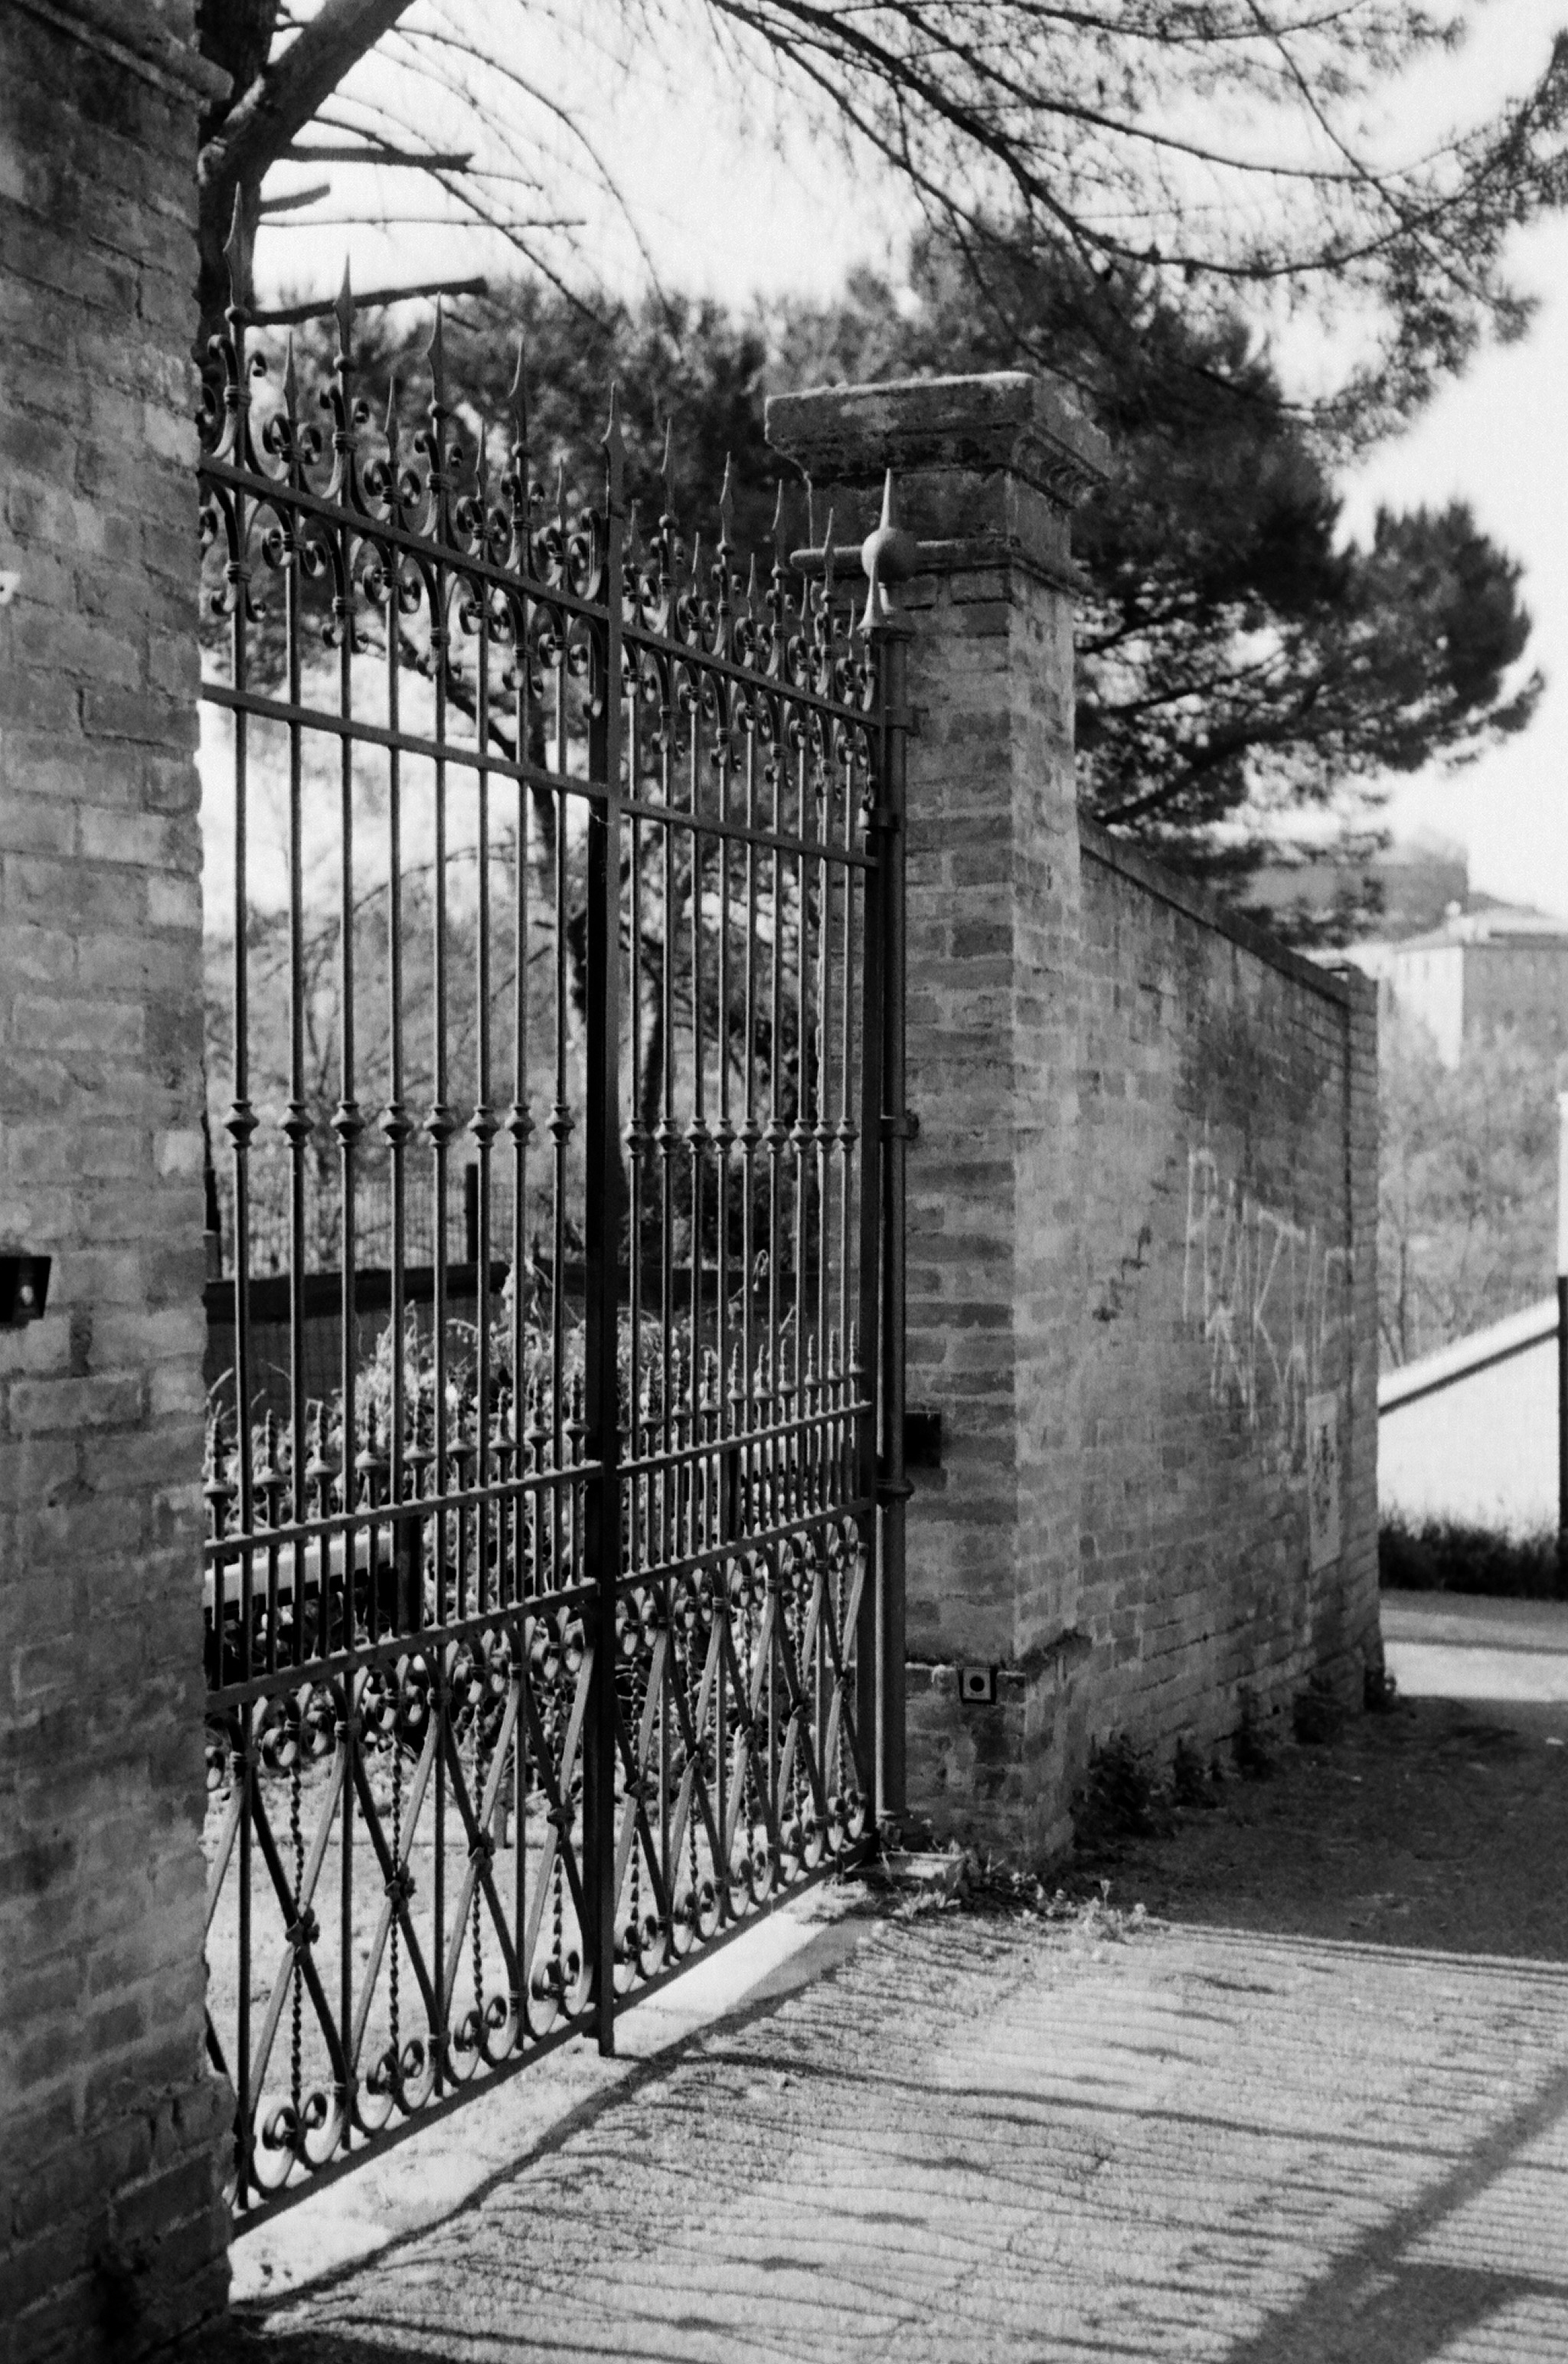 A gate in the southern part of Siena